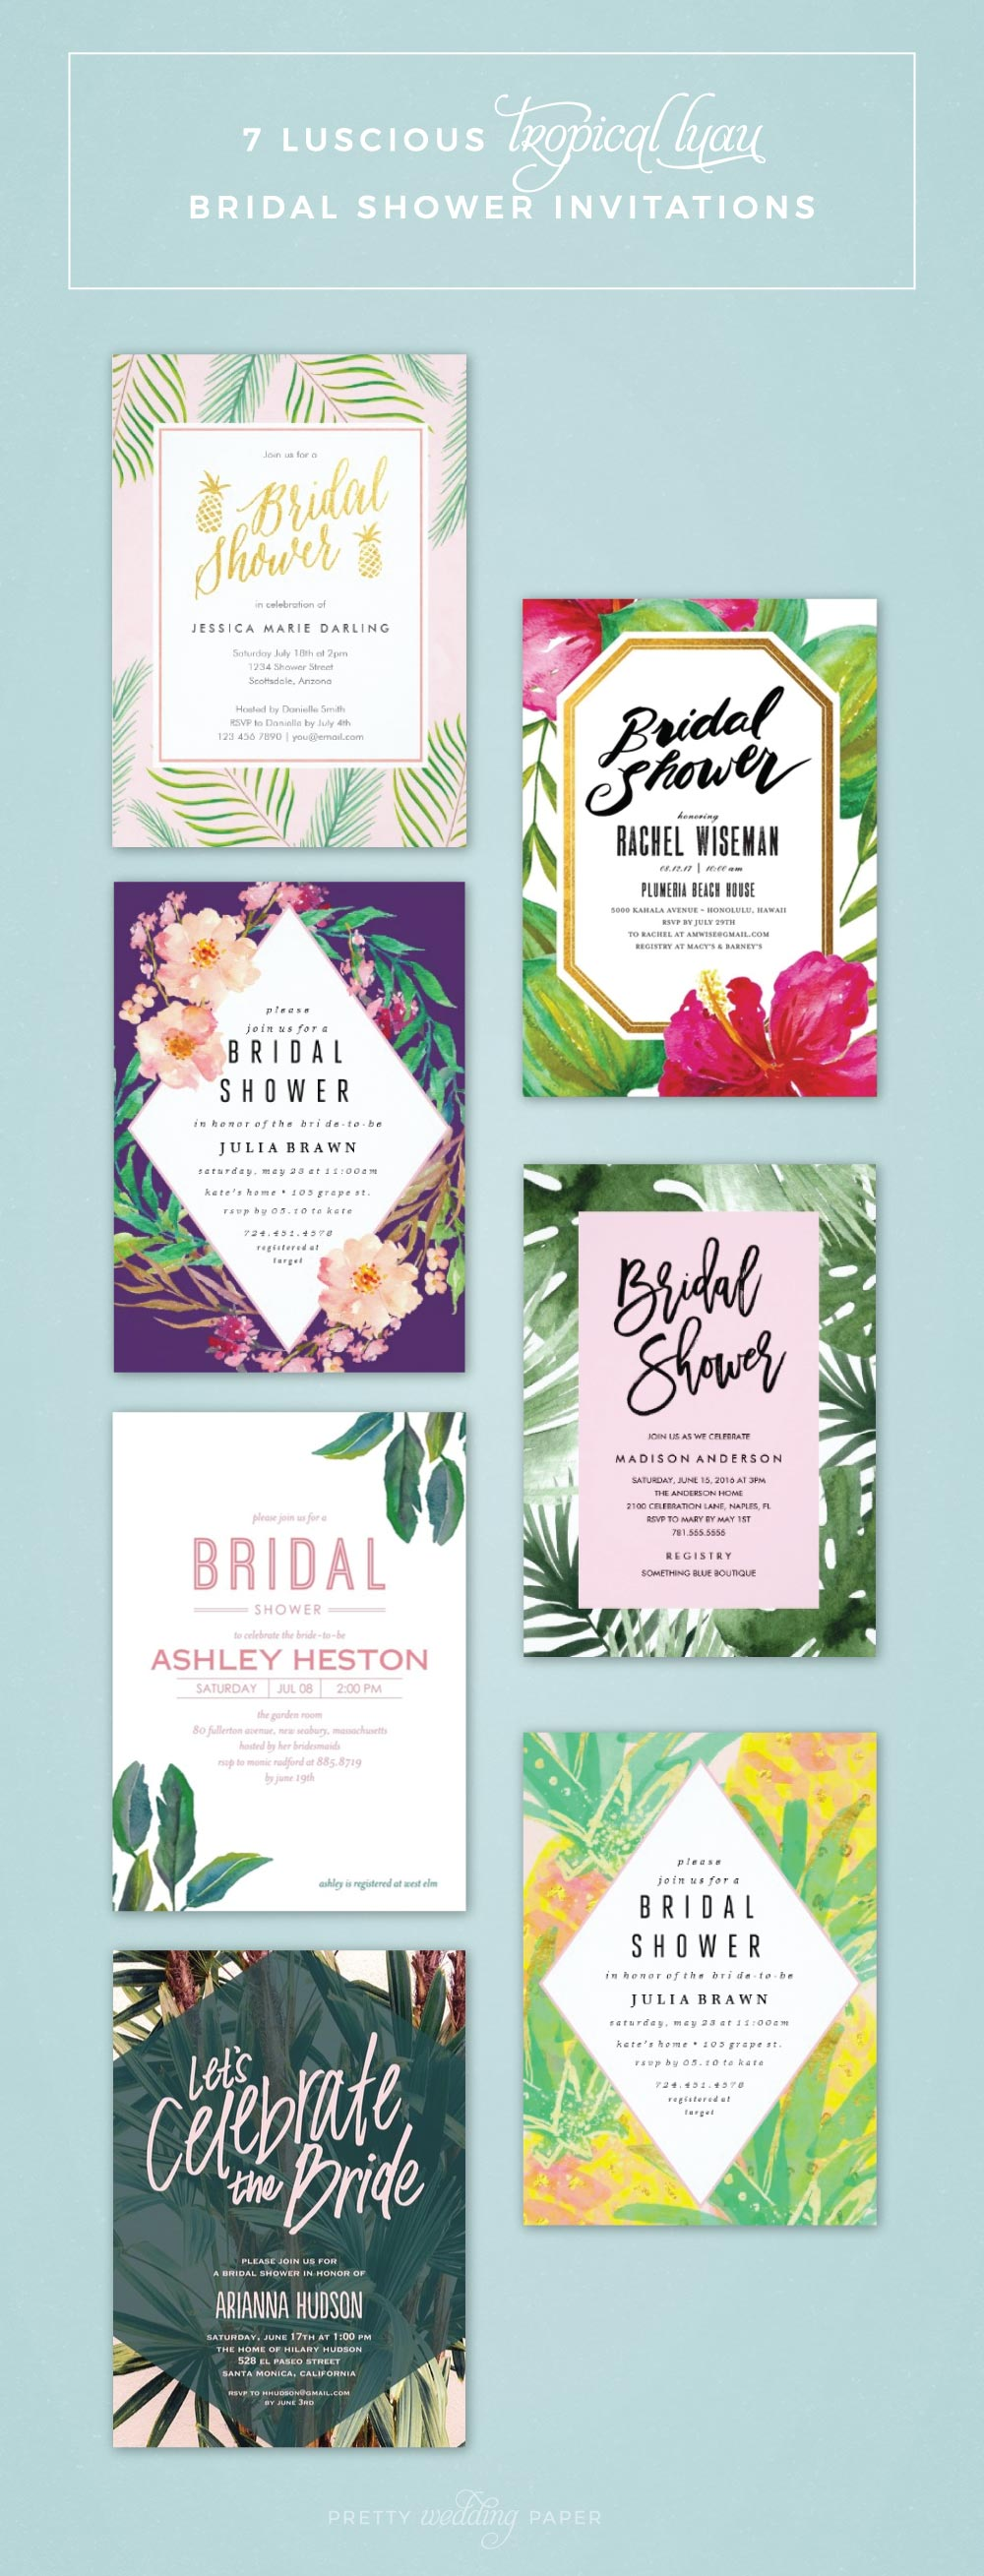 Gorgeous bridal shower invitations for a tropical bridal shower or bridal shower luau party. Pretty, feminine designs in pink, green and gold with pineapple decorations and palm tree leaves!